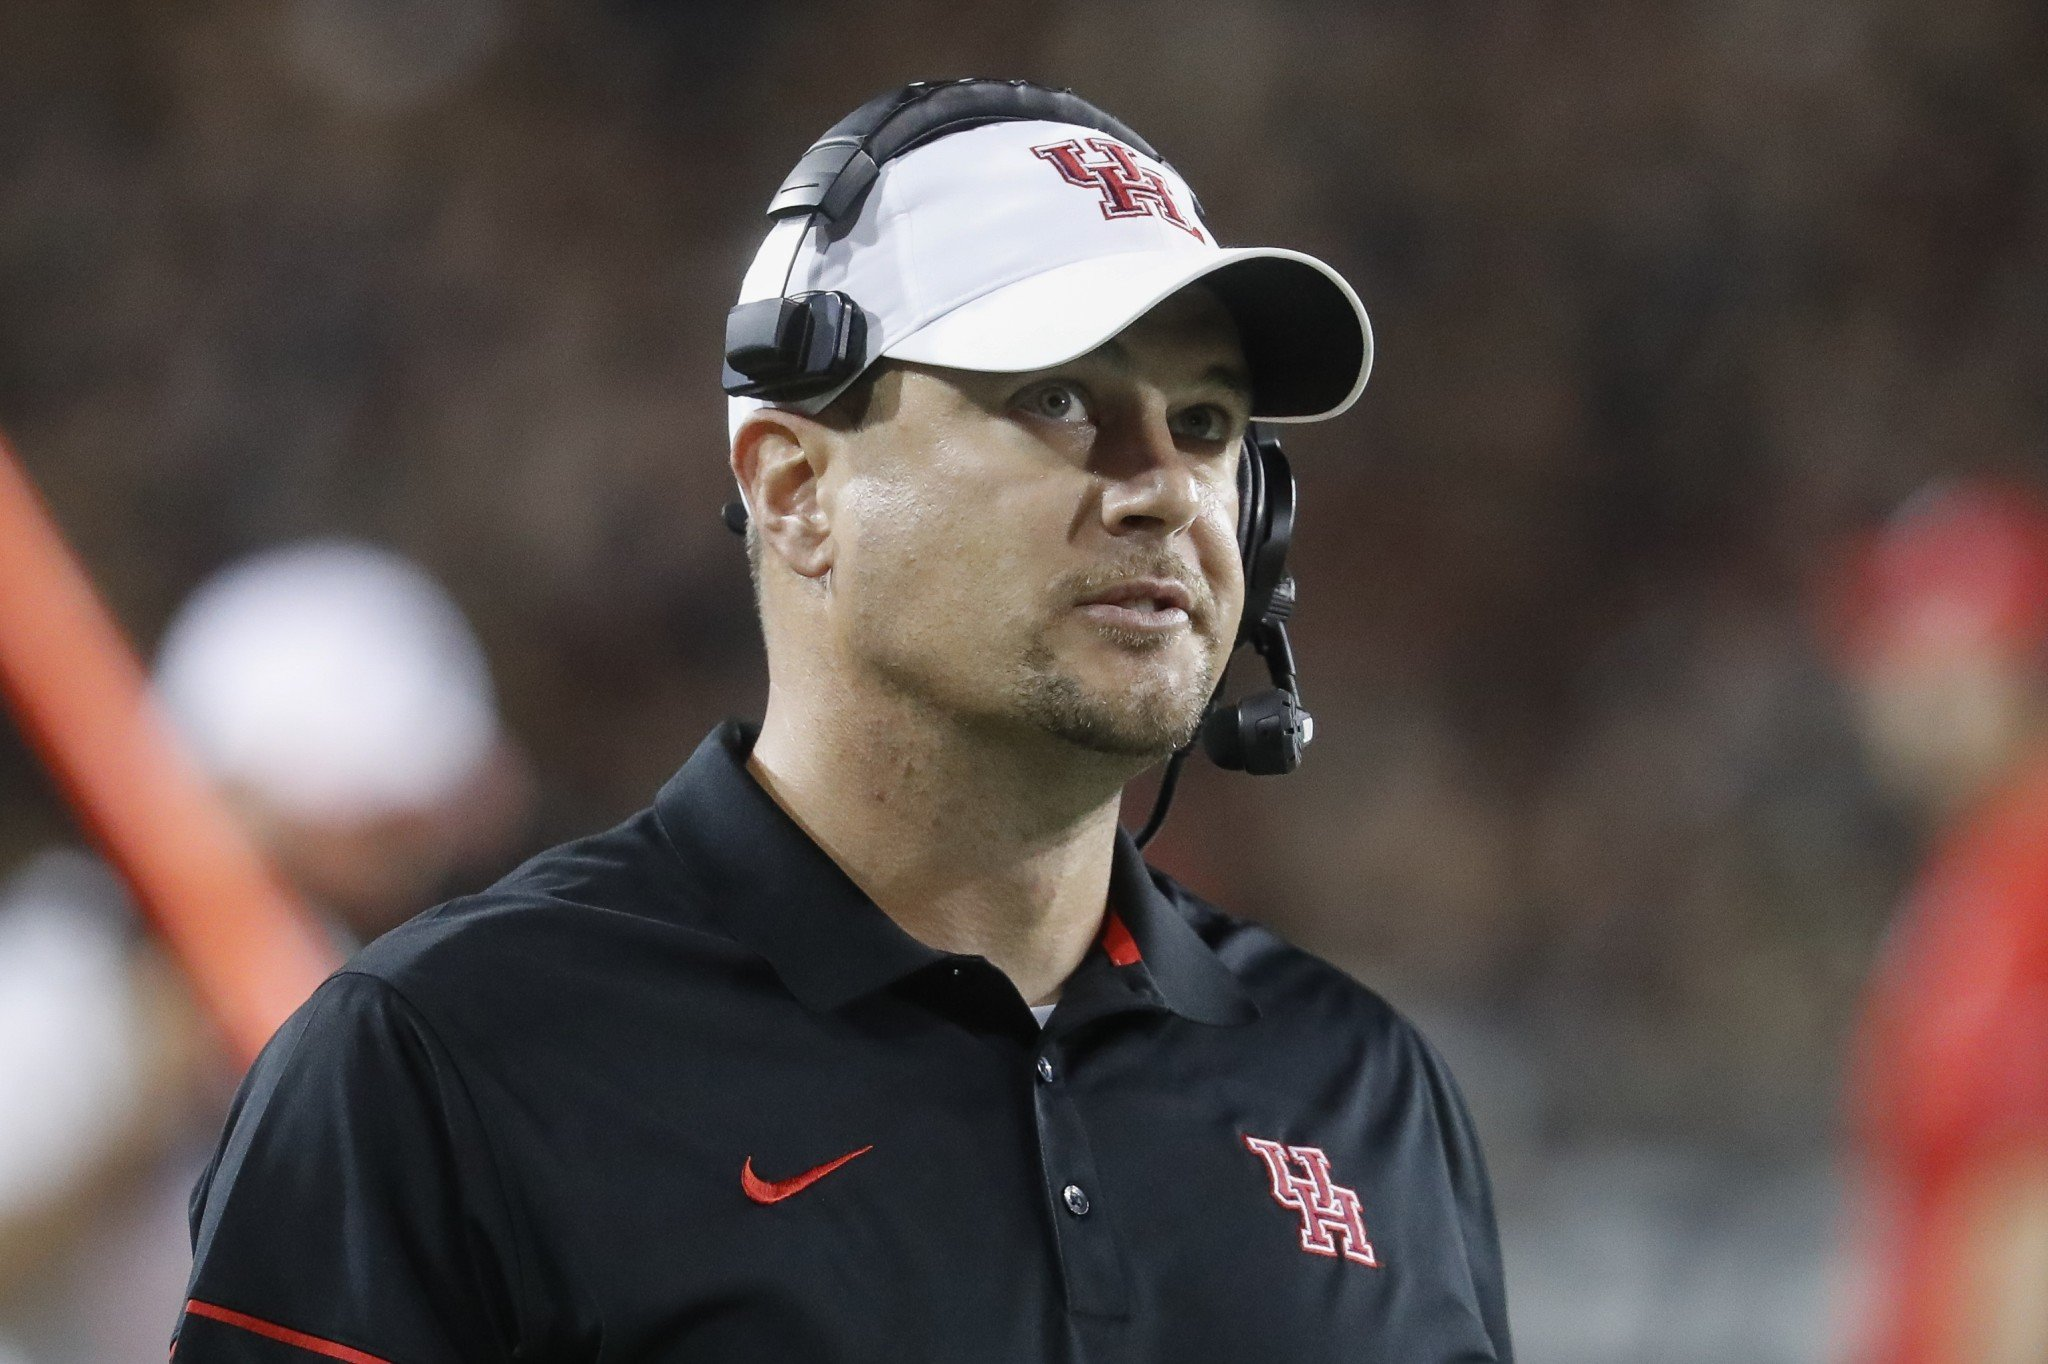 Houston coach Tom Herman will reportedly be Texas' new coach. (Getty)